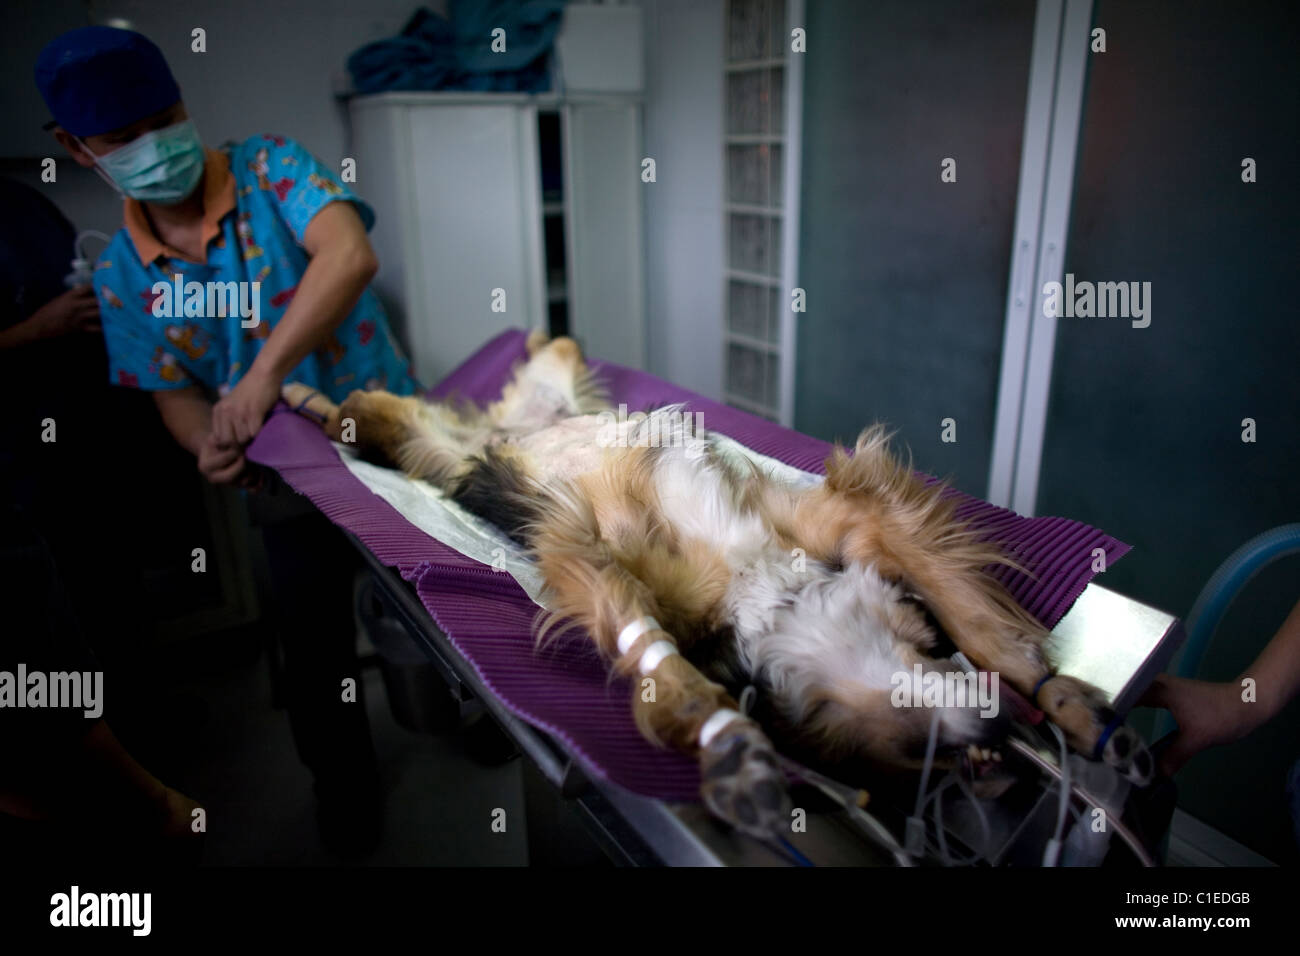 A surgeon ties a sedated dog before a surgery at a Pet Hospital in Condesa, Mexico City, Mexico, February 4, 2011. - Stock Image